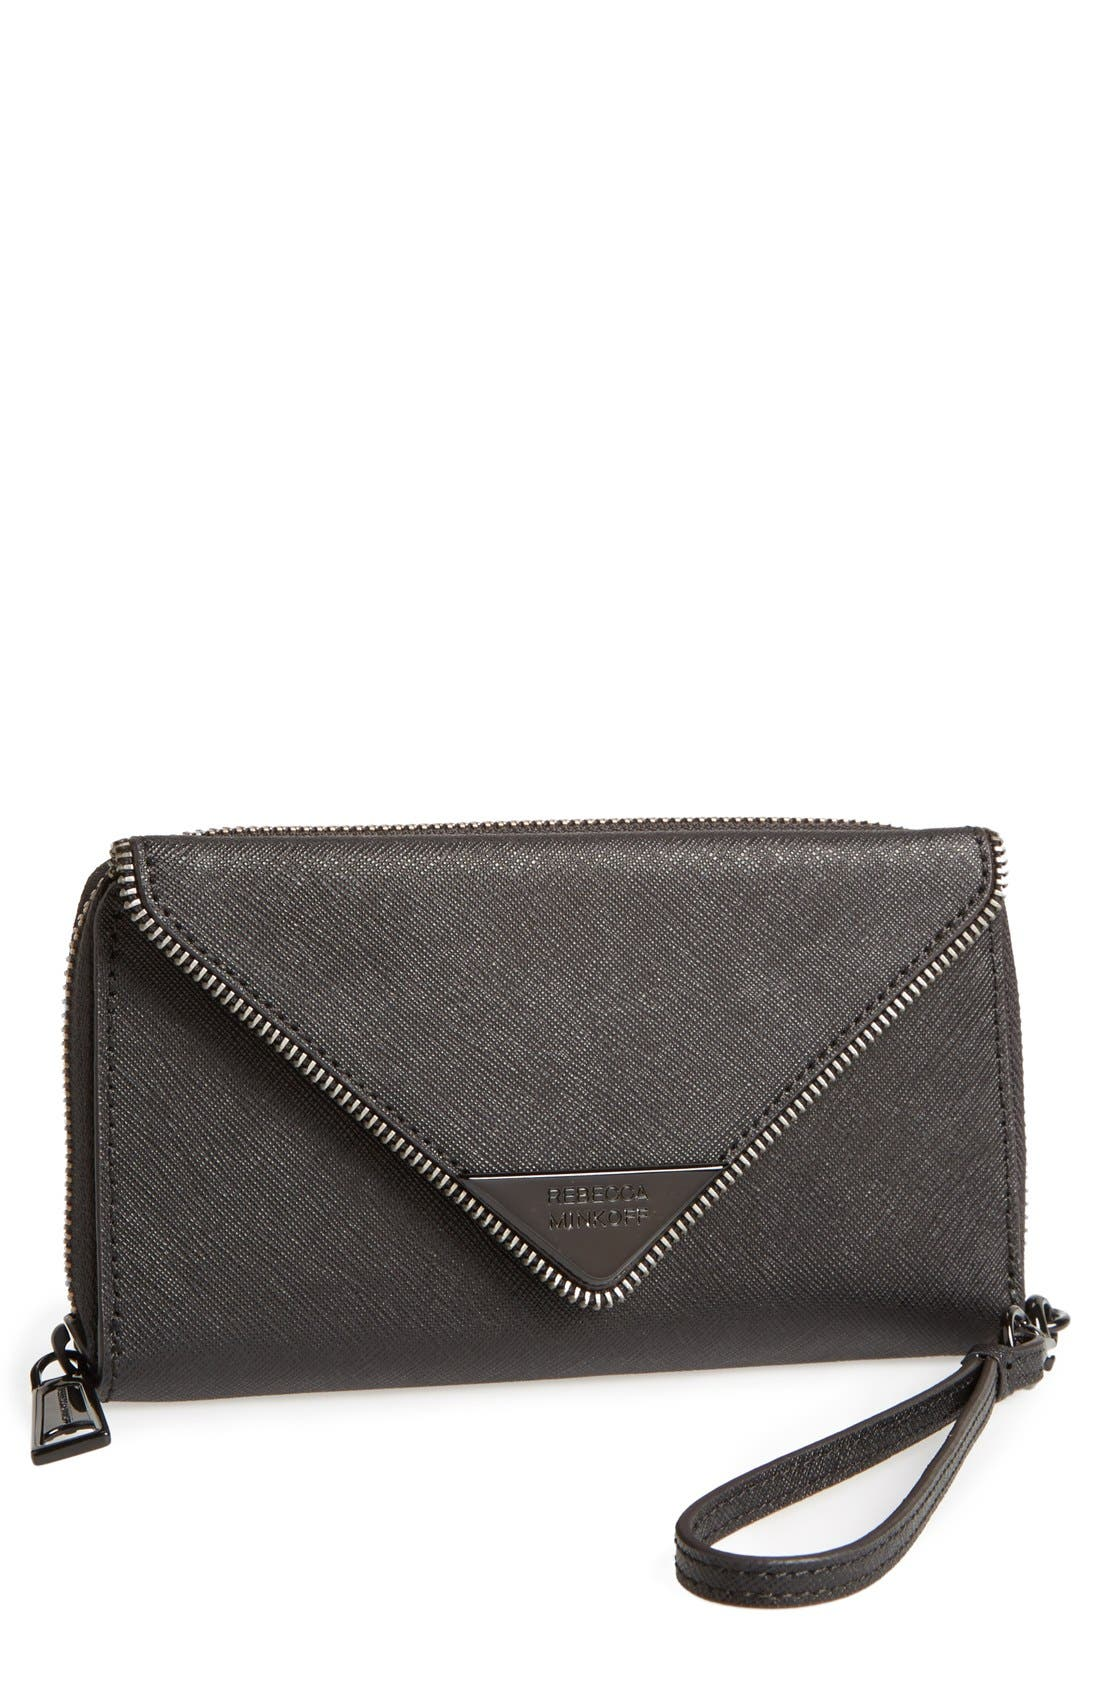 REBECCA MINKOFF 'Zoey Tech' Wristlet, Main, color, 001